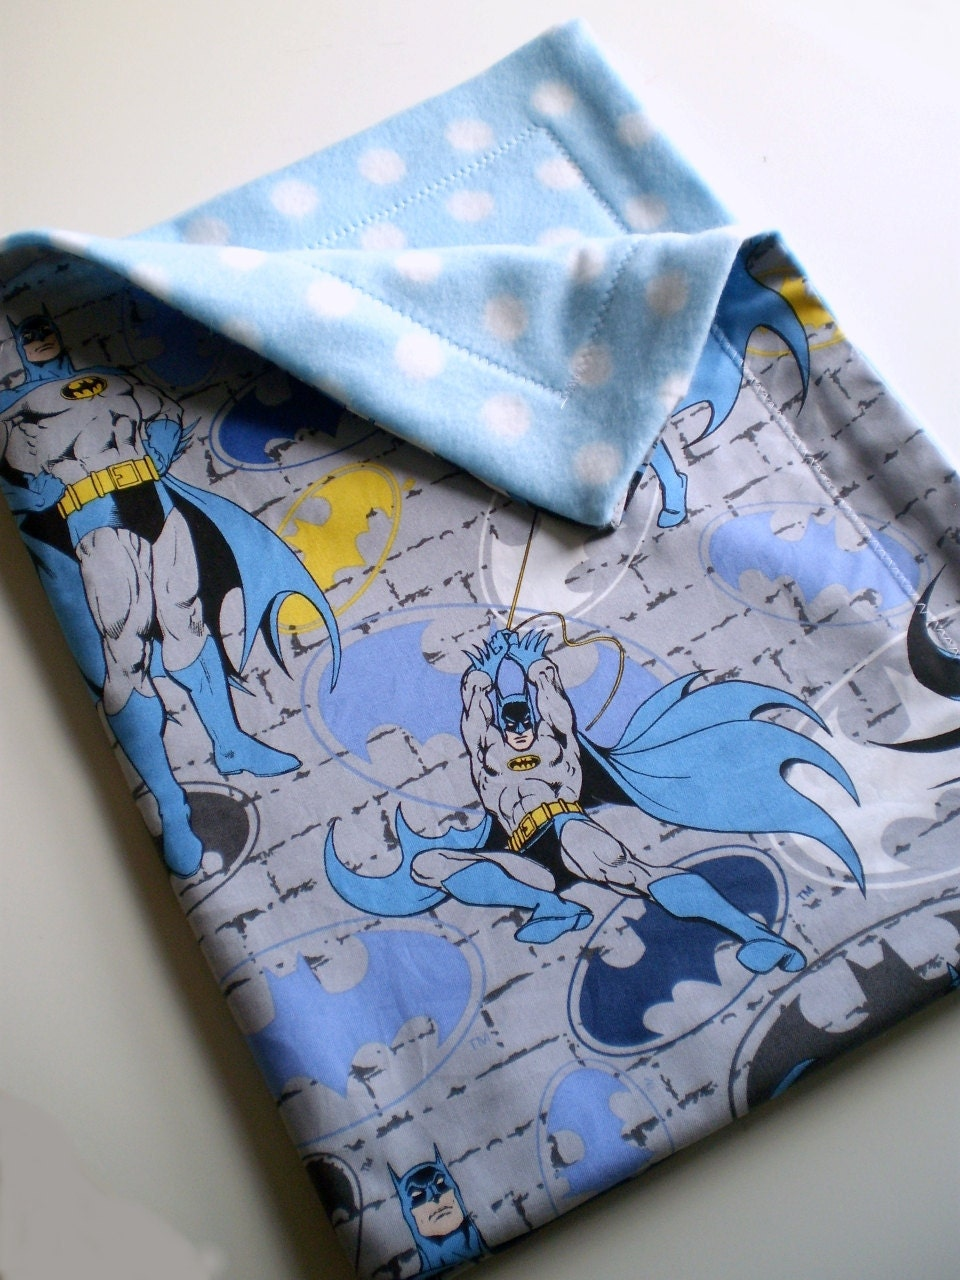 Batman Blankets. Showing 22 of 22 results that match your query. Search Product Result. Comics Batman City Safe 62